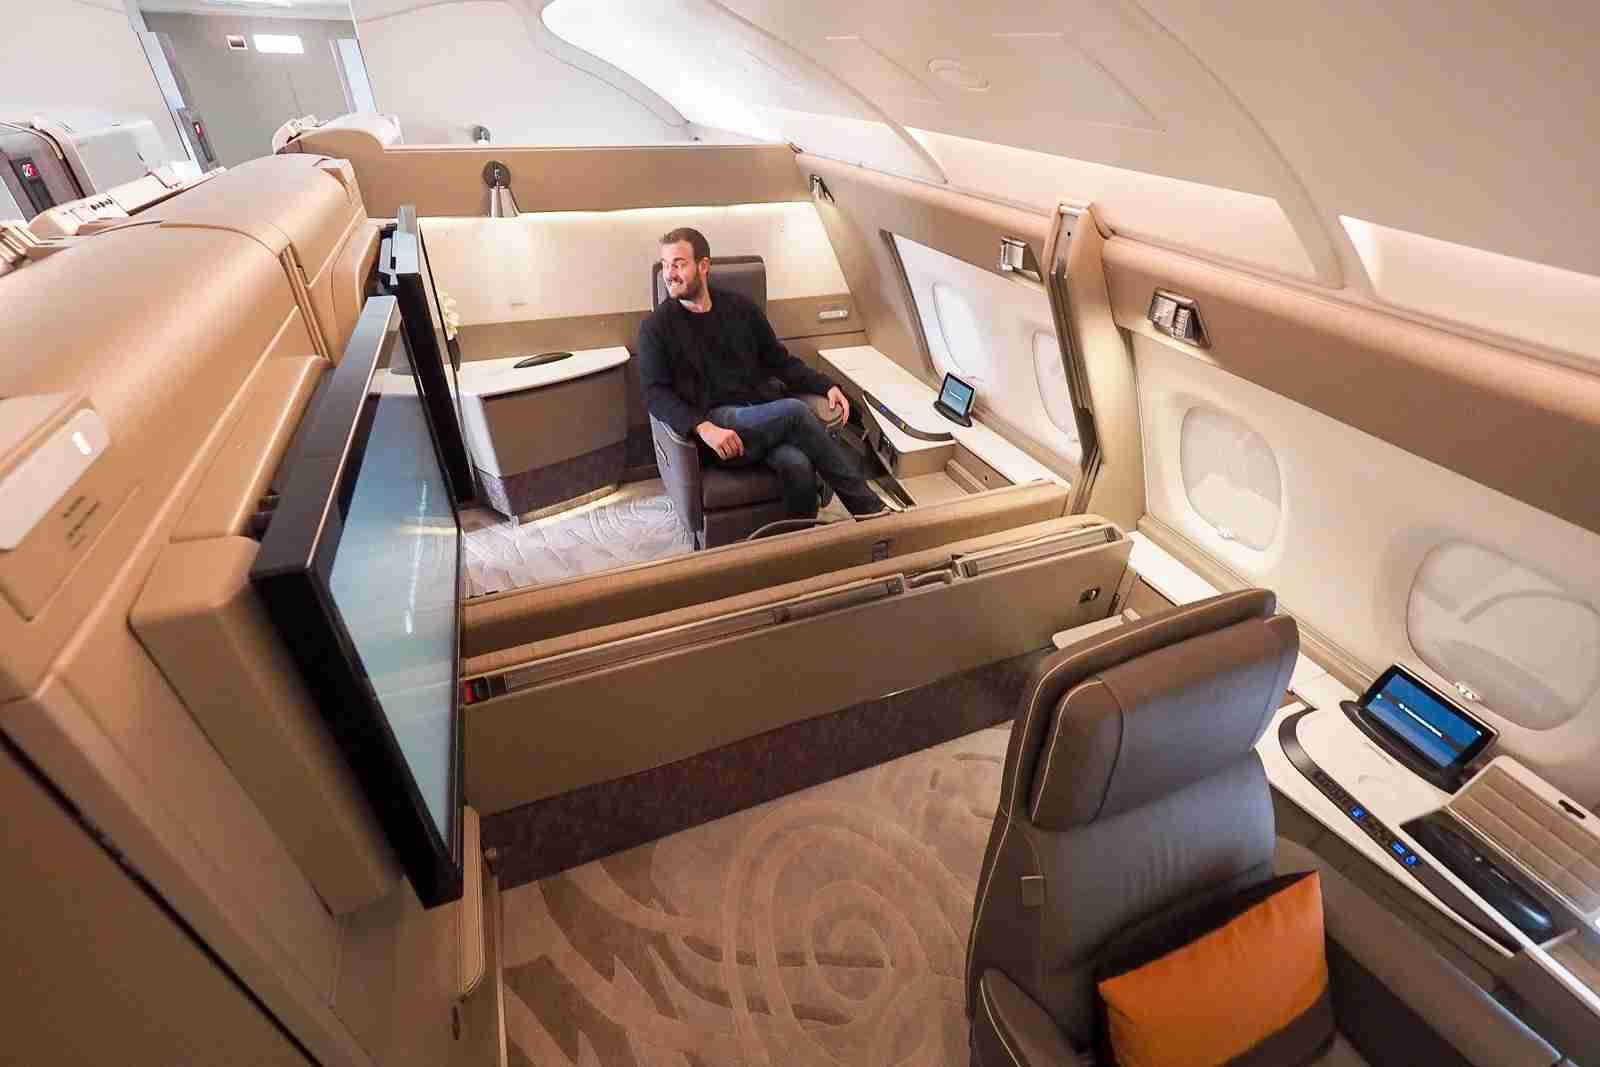 Singapore Airlines A380 new First Class Suites. Photo by Brian Kelly / The Points Guy